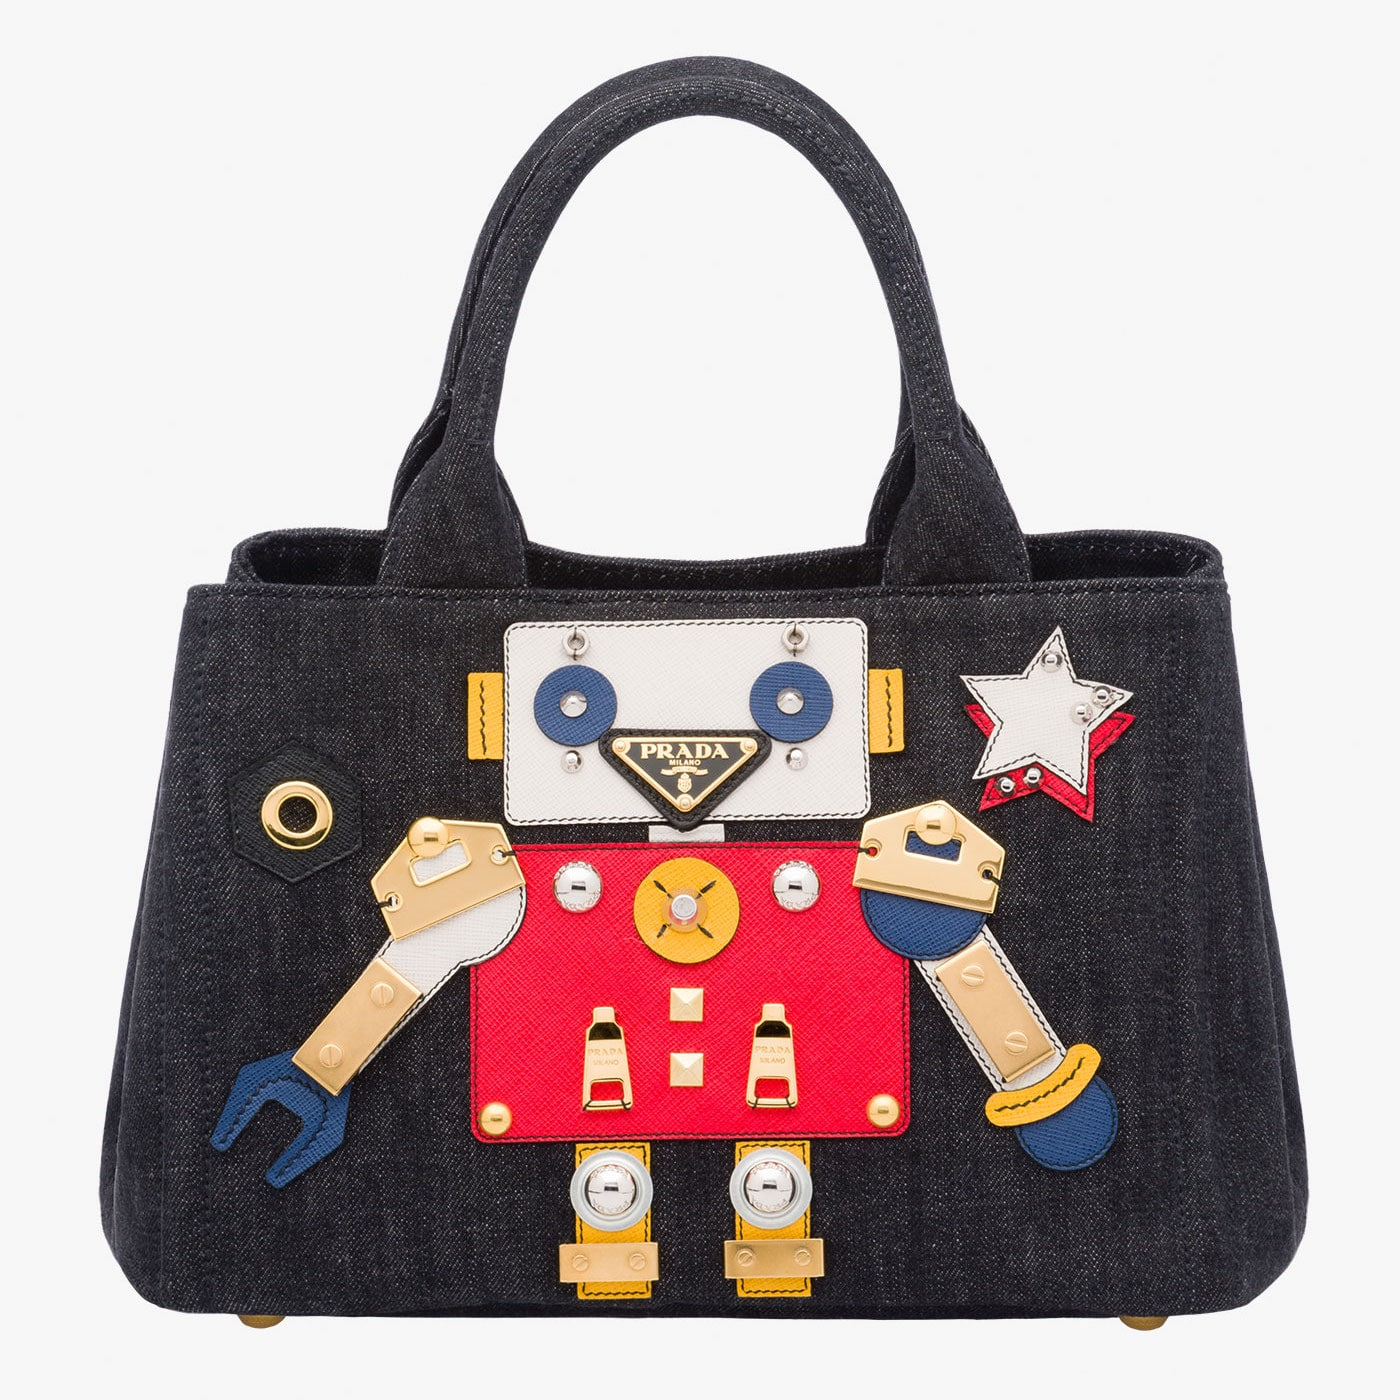 84e4bbca42ba Prada Limited Edition Robot Collection